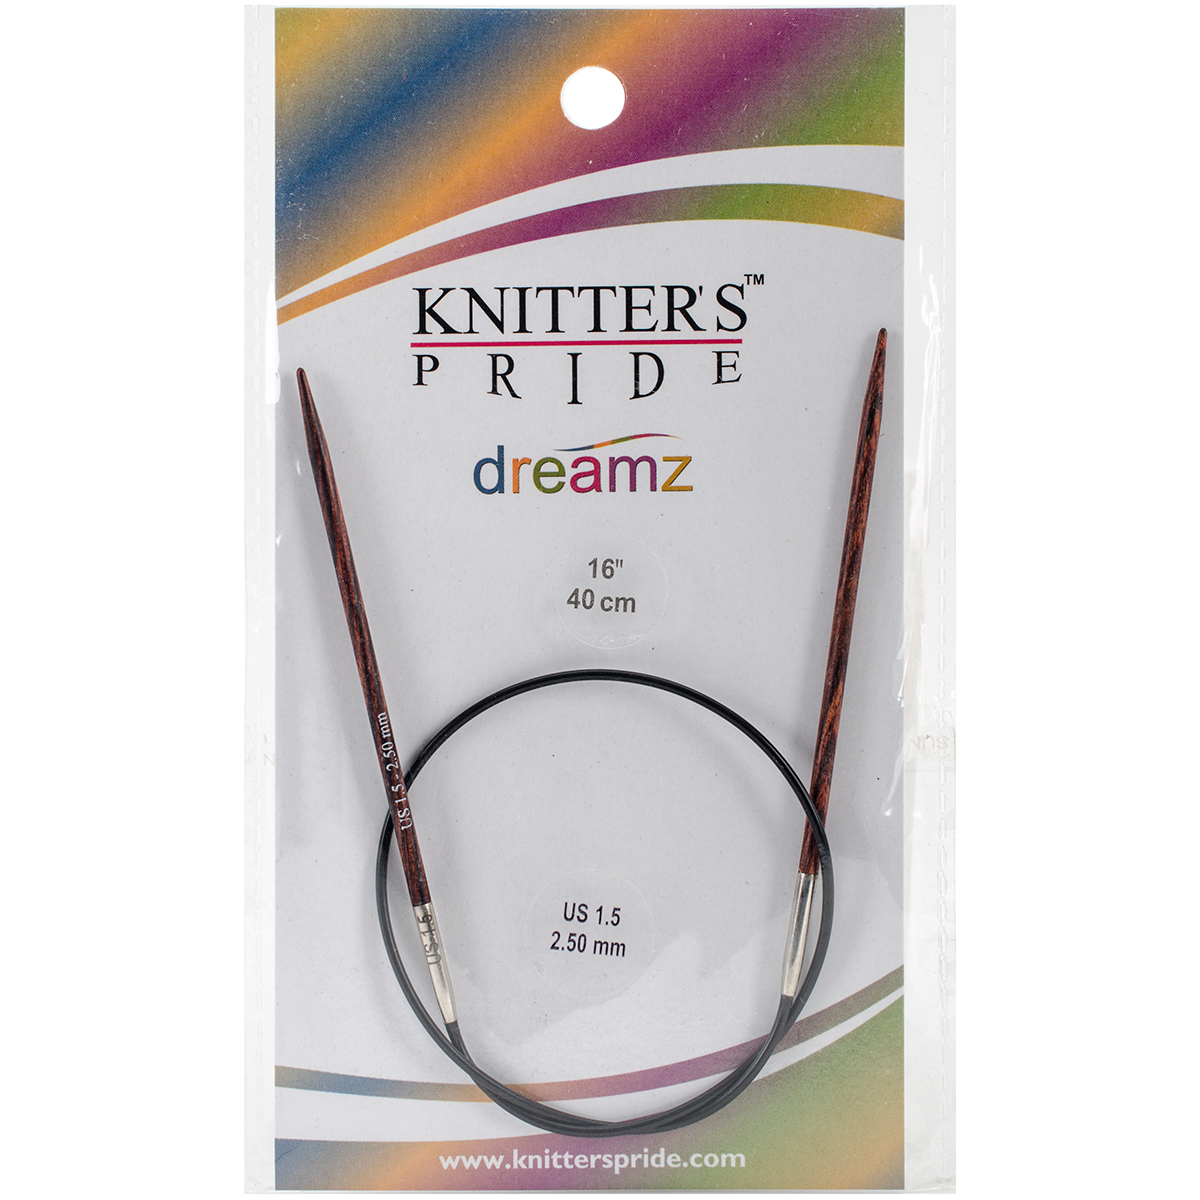 Knitter's Pride-Dreamz Fixed Circular Needles 16-Size 1.5/2.5mm